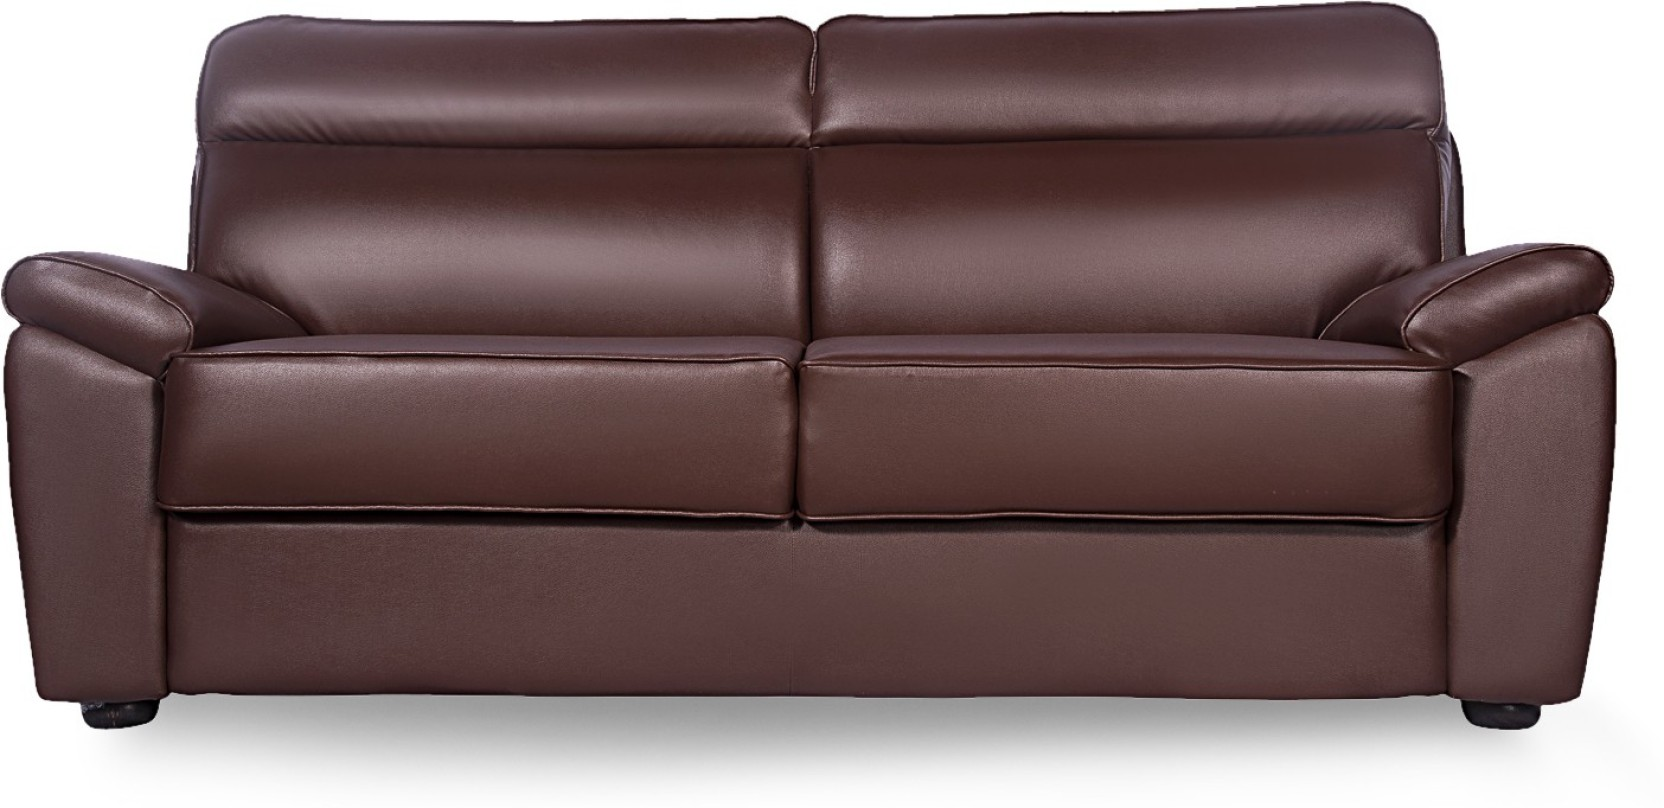 Godrej Interio Planteous Sofa Leatherette 3 Seater Price In Drkevin Leather Shoes 13301 Maroon 43 Home